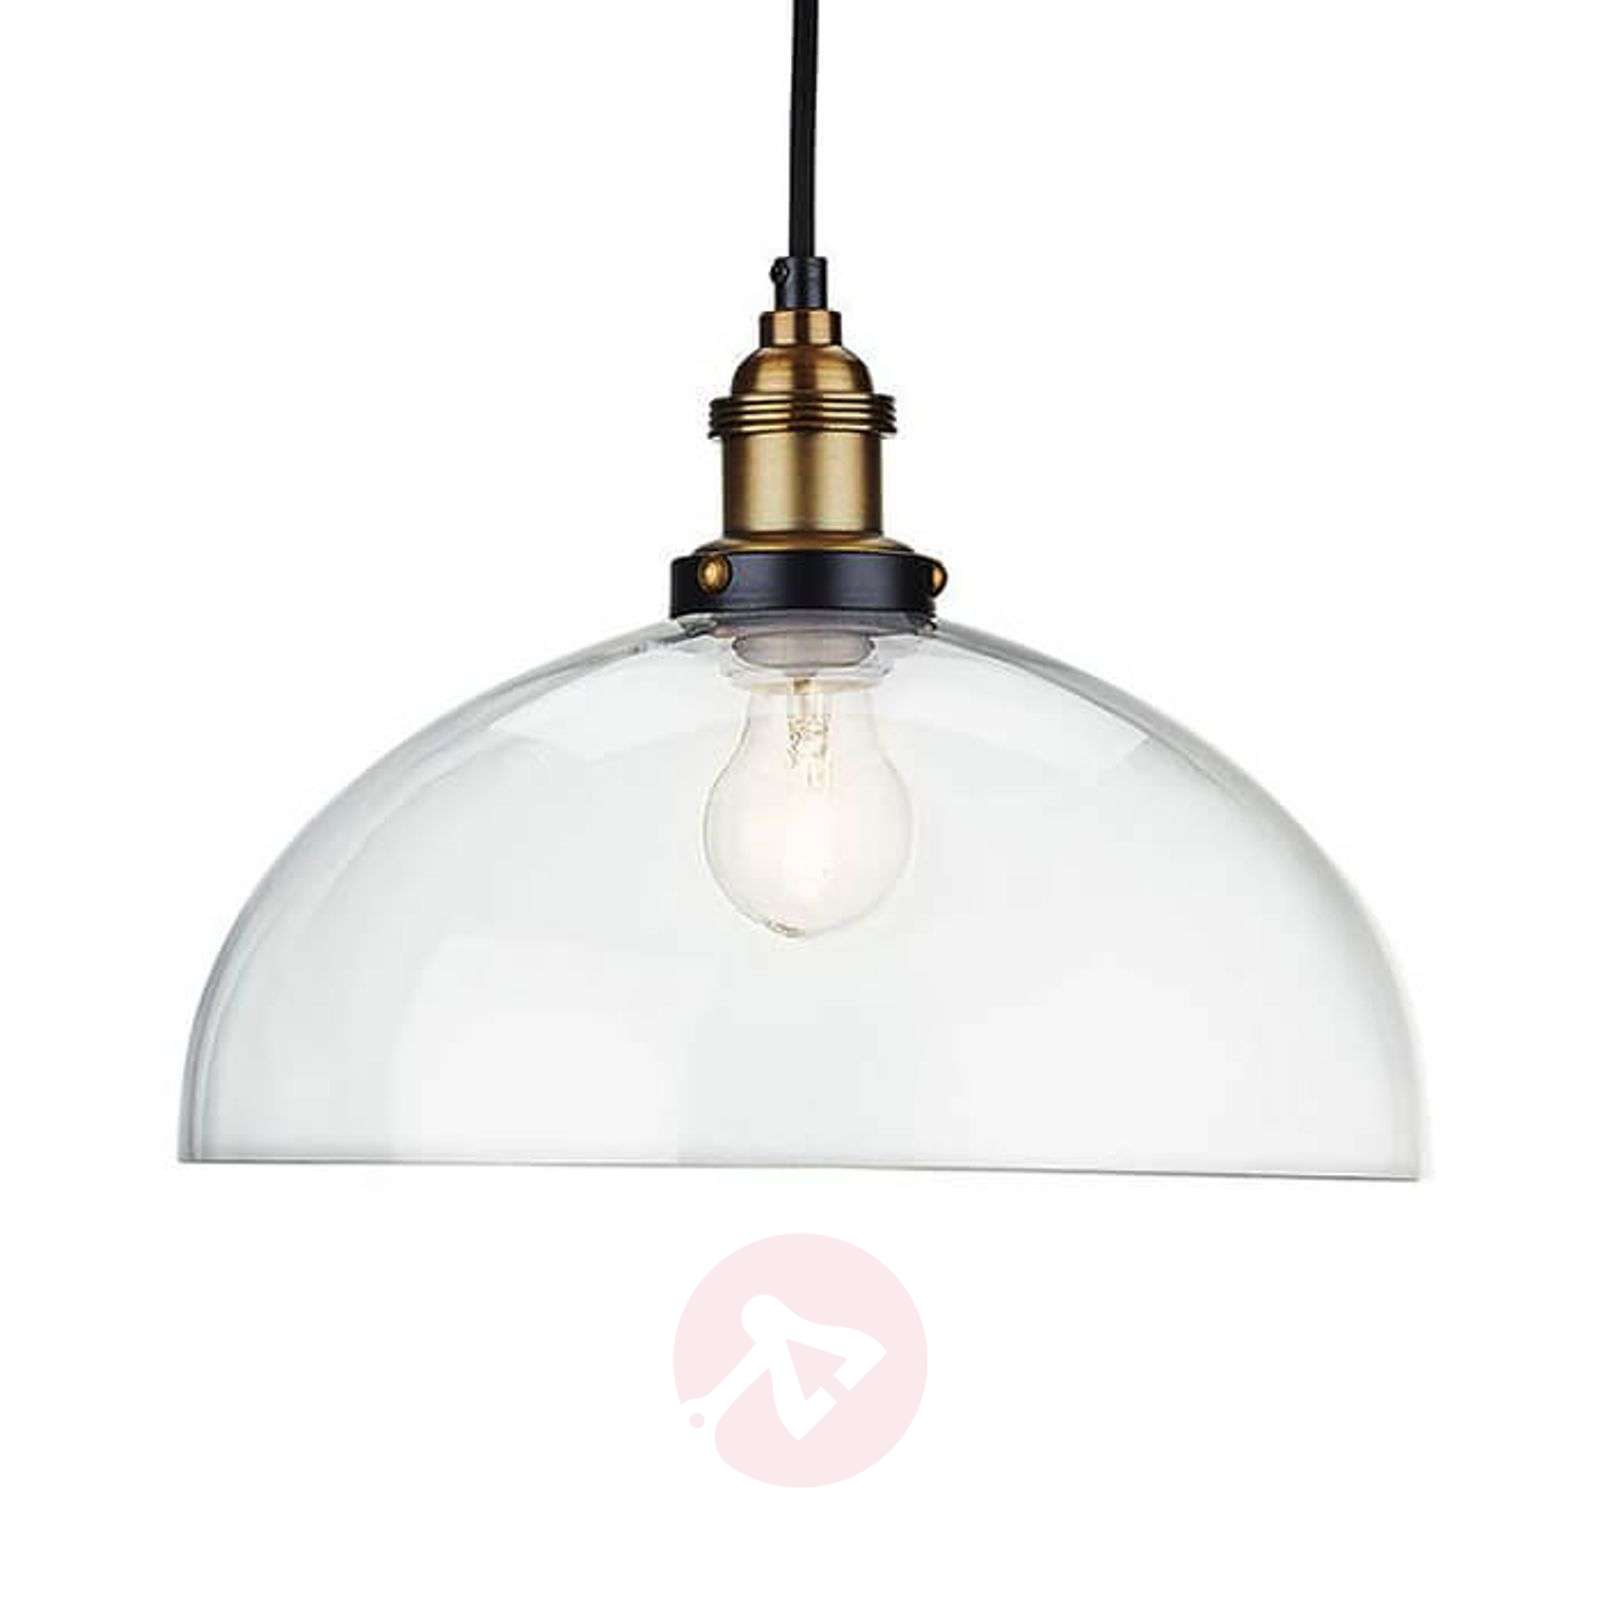 fl single vintage lamp products black pendant